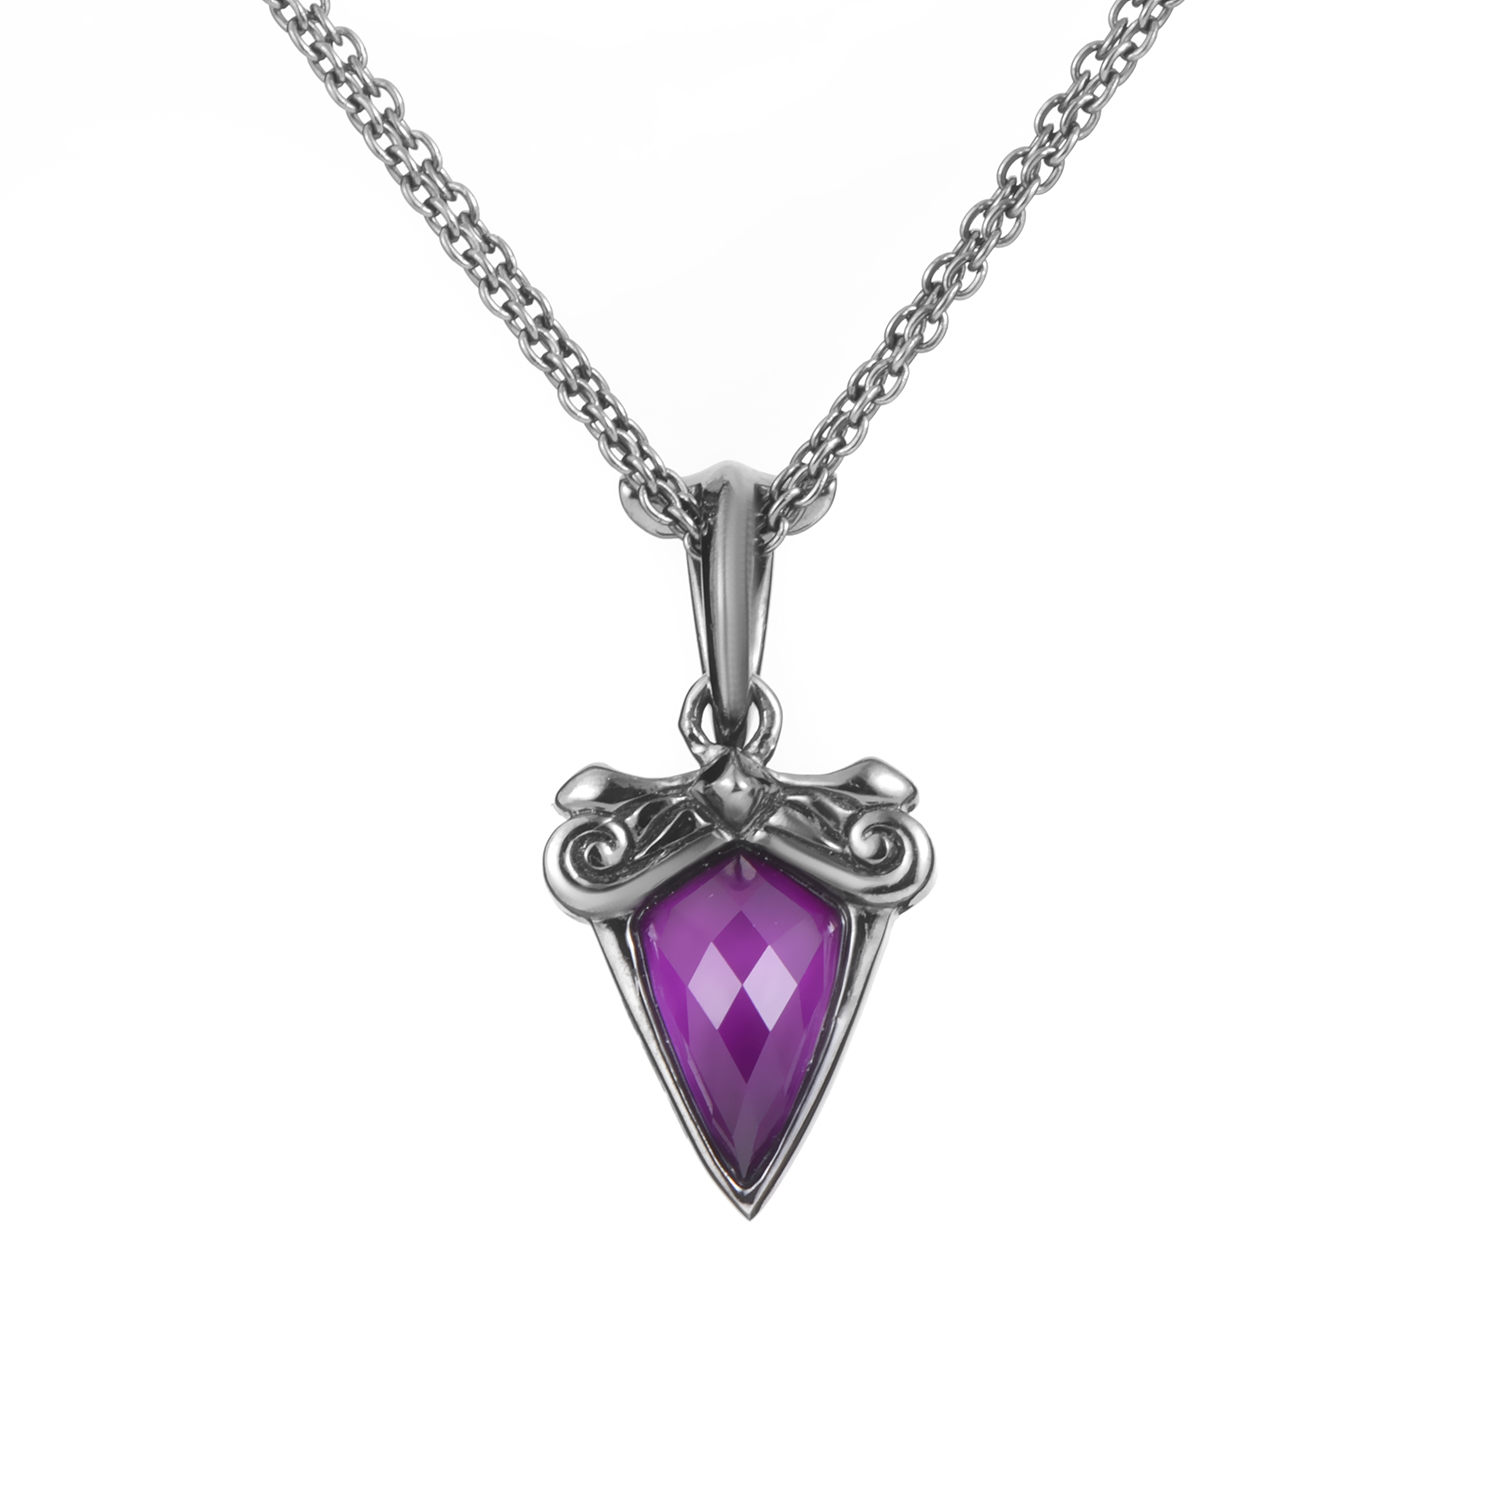 Superstud Women's Silver Sugilite & Quartz Pendant Necklace